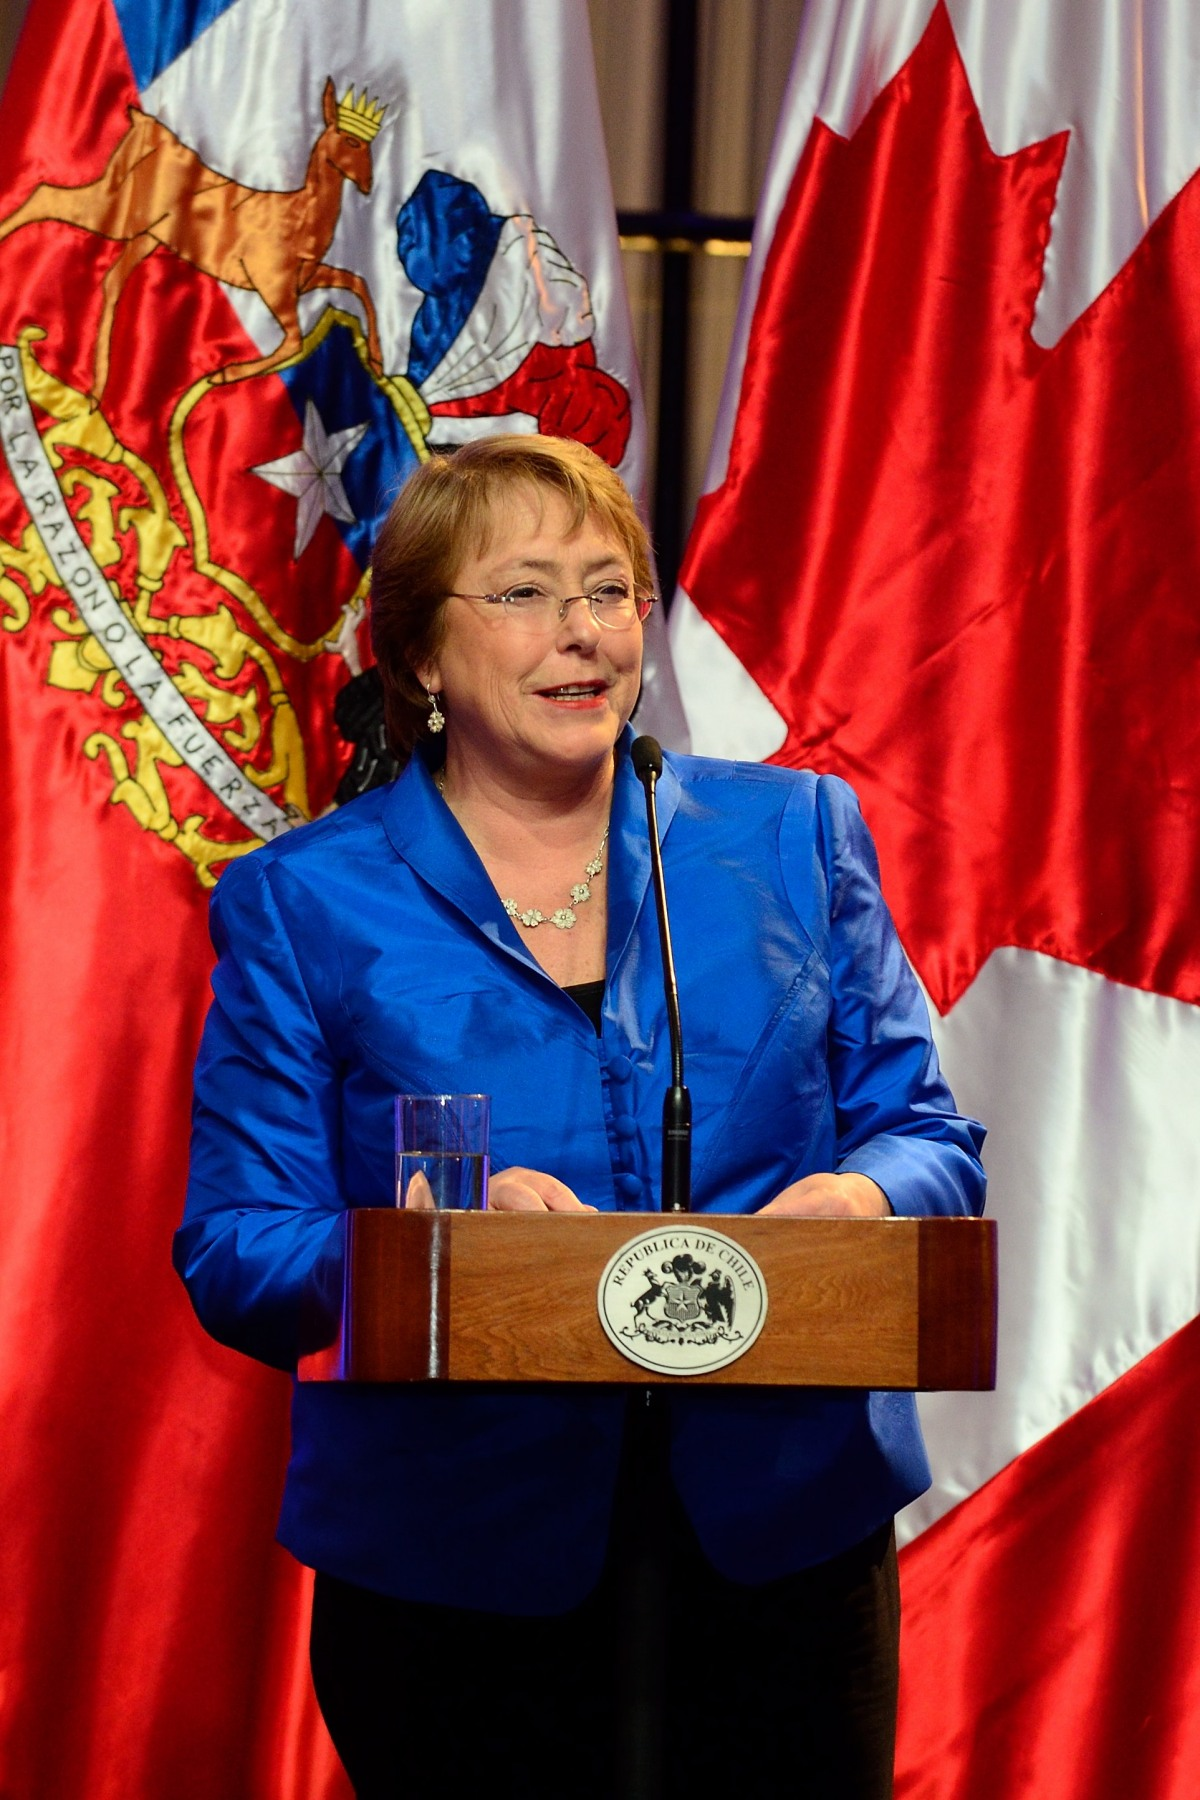 In 2006, Her Excellency Michelle Bachelet became Chile's first ever female president. Her first mandate ended in 2010. She was inaugurated as President of Chile for a second time on March 11, 2014, for the 2014-2018 period.